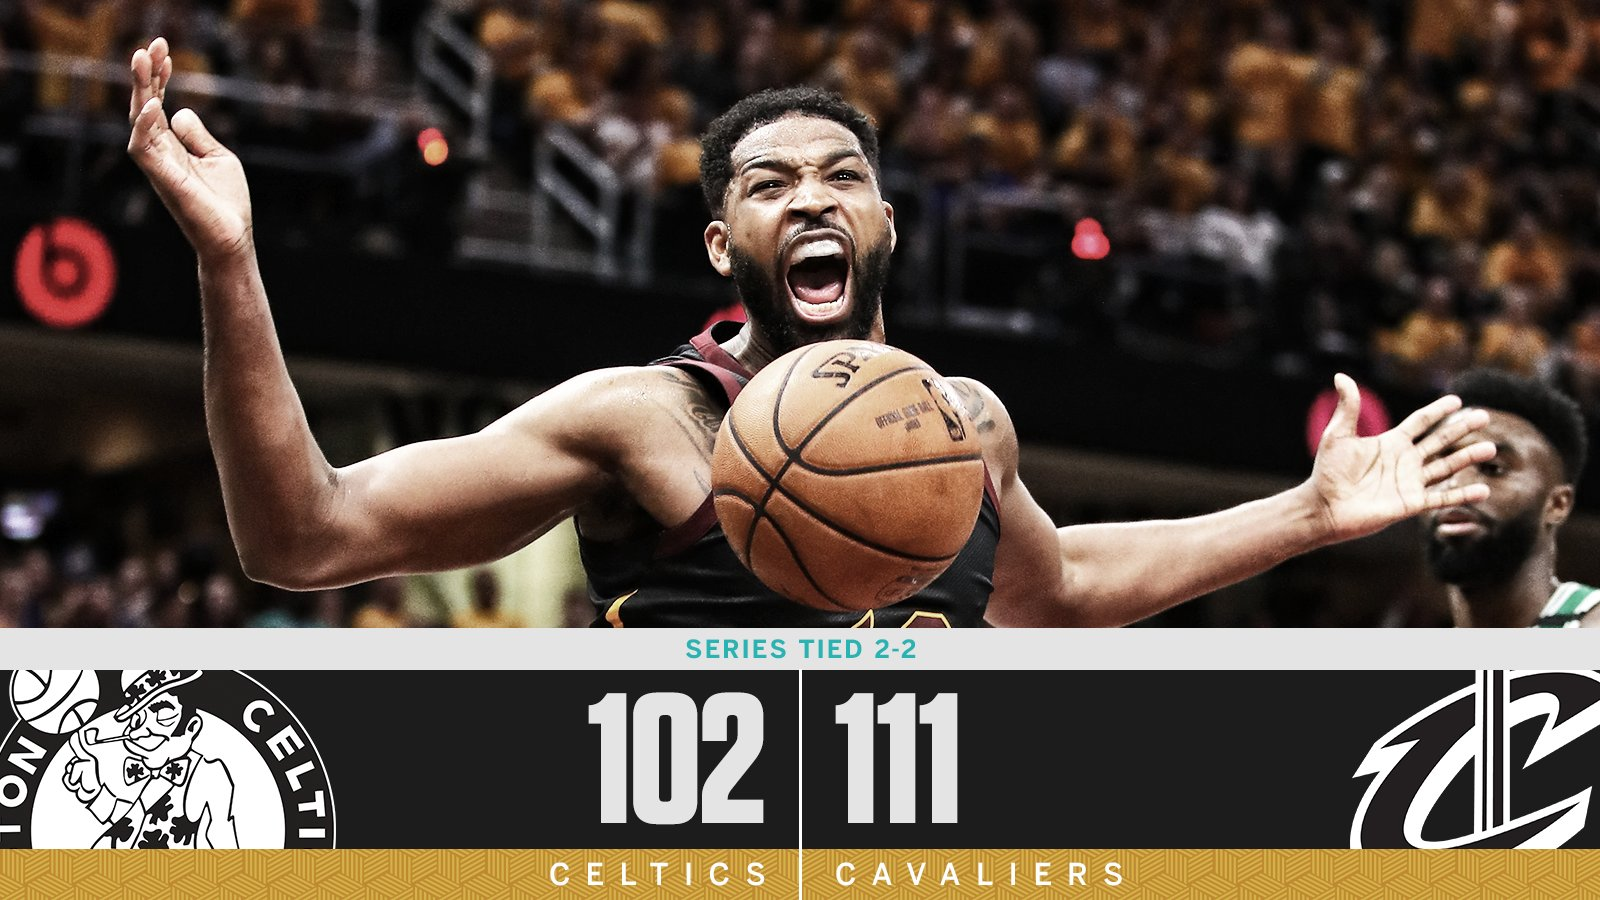 ALL. TIED. UP. https://t.co/TbdoGPv4S2